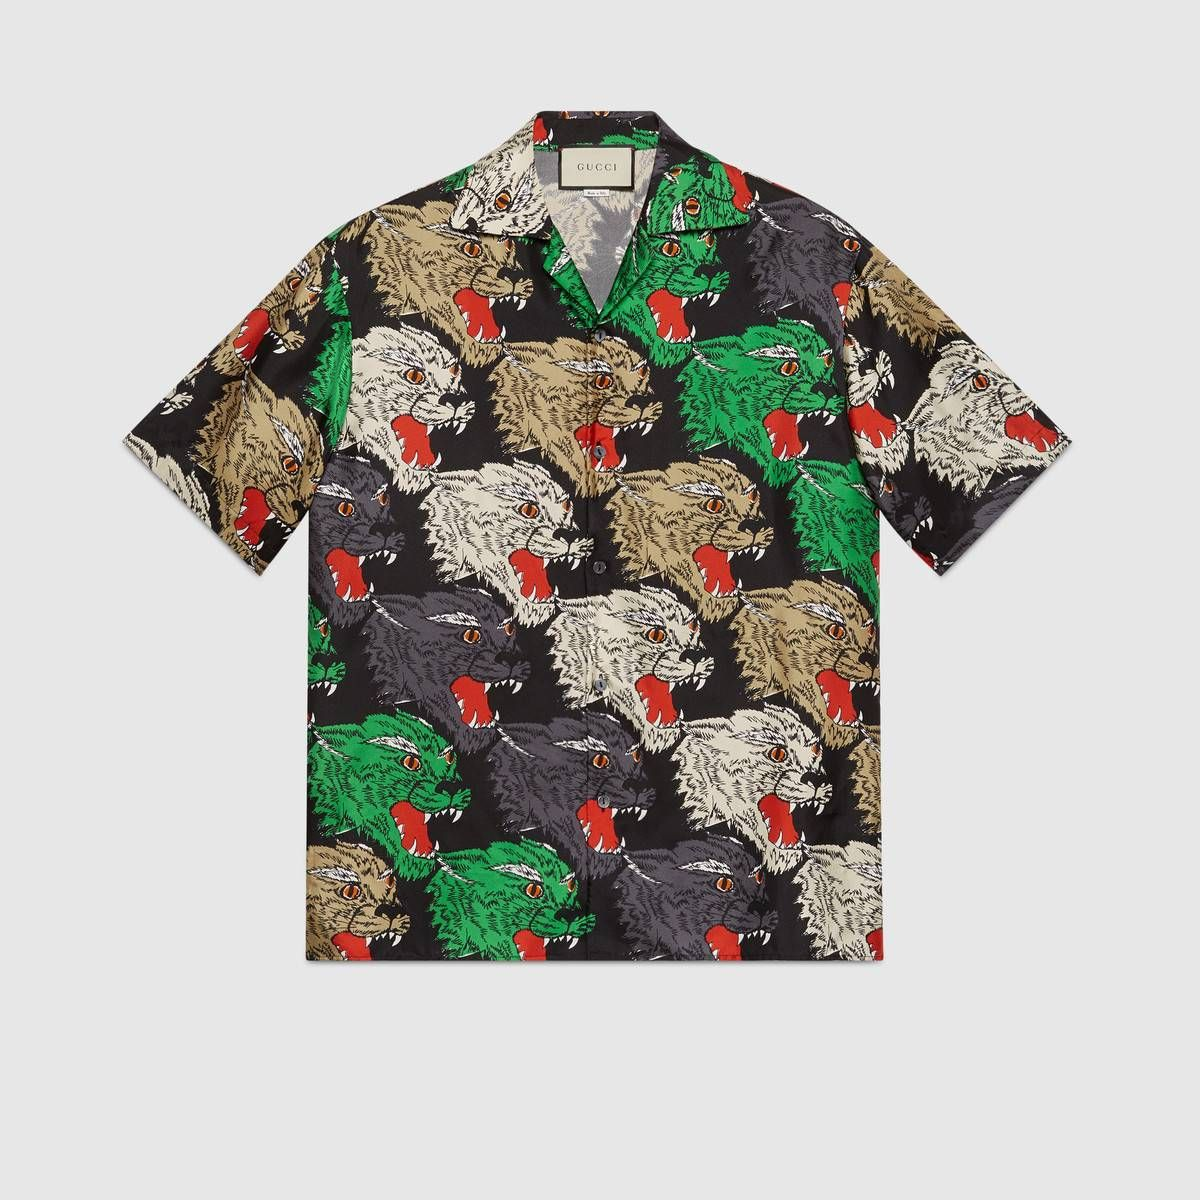 Shop The Panther Face Bowling Shirt By Gucci With An Overtly 80s Feel The Repetitive Panther Face Is Displayed Bowling Outfit Mens Shirt Dress Bowling Shirts [ 1200 x 1200 Pixel ]